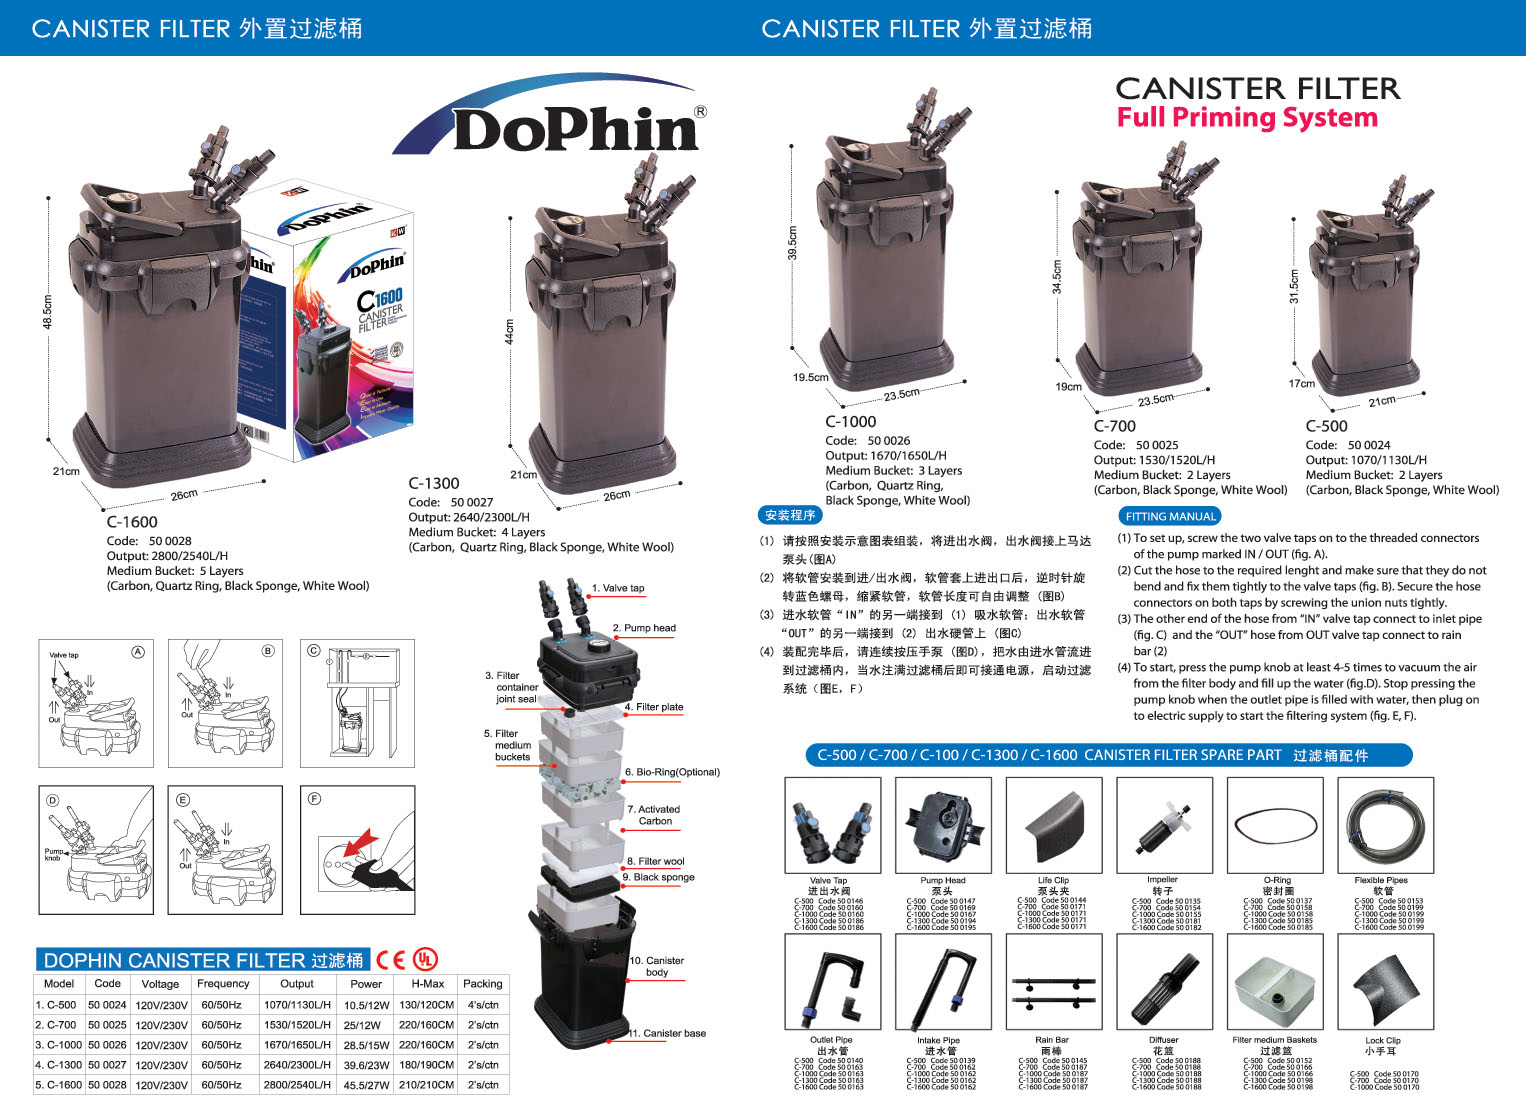 outdoor lamp wiring diagram dolphin canister filter coast lamps limited  dolphin canister filter coast lamps limited